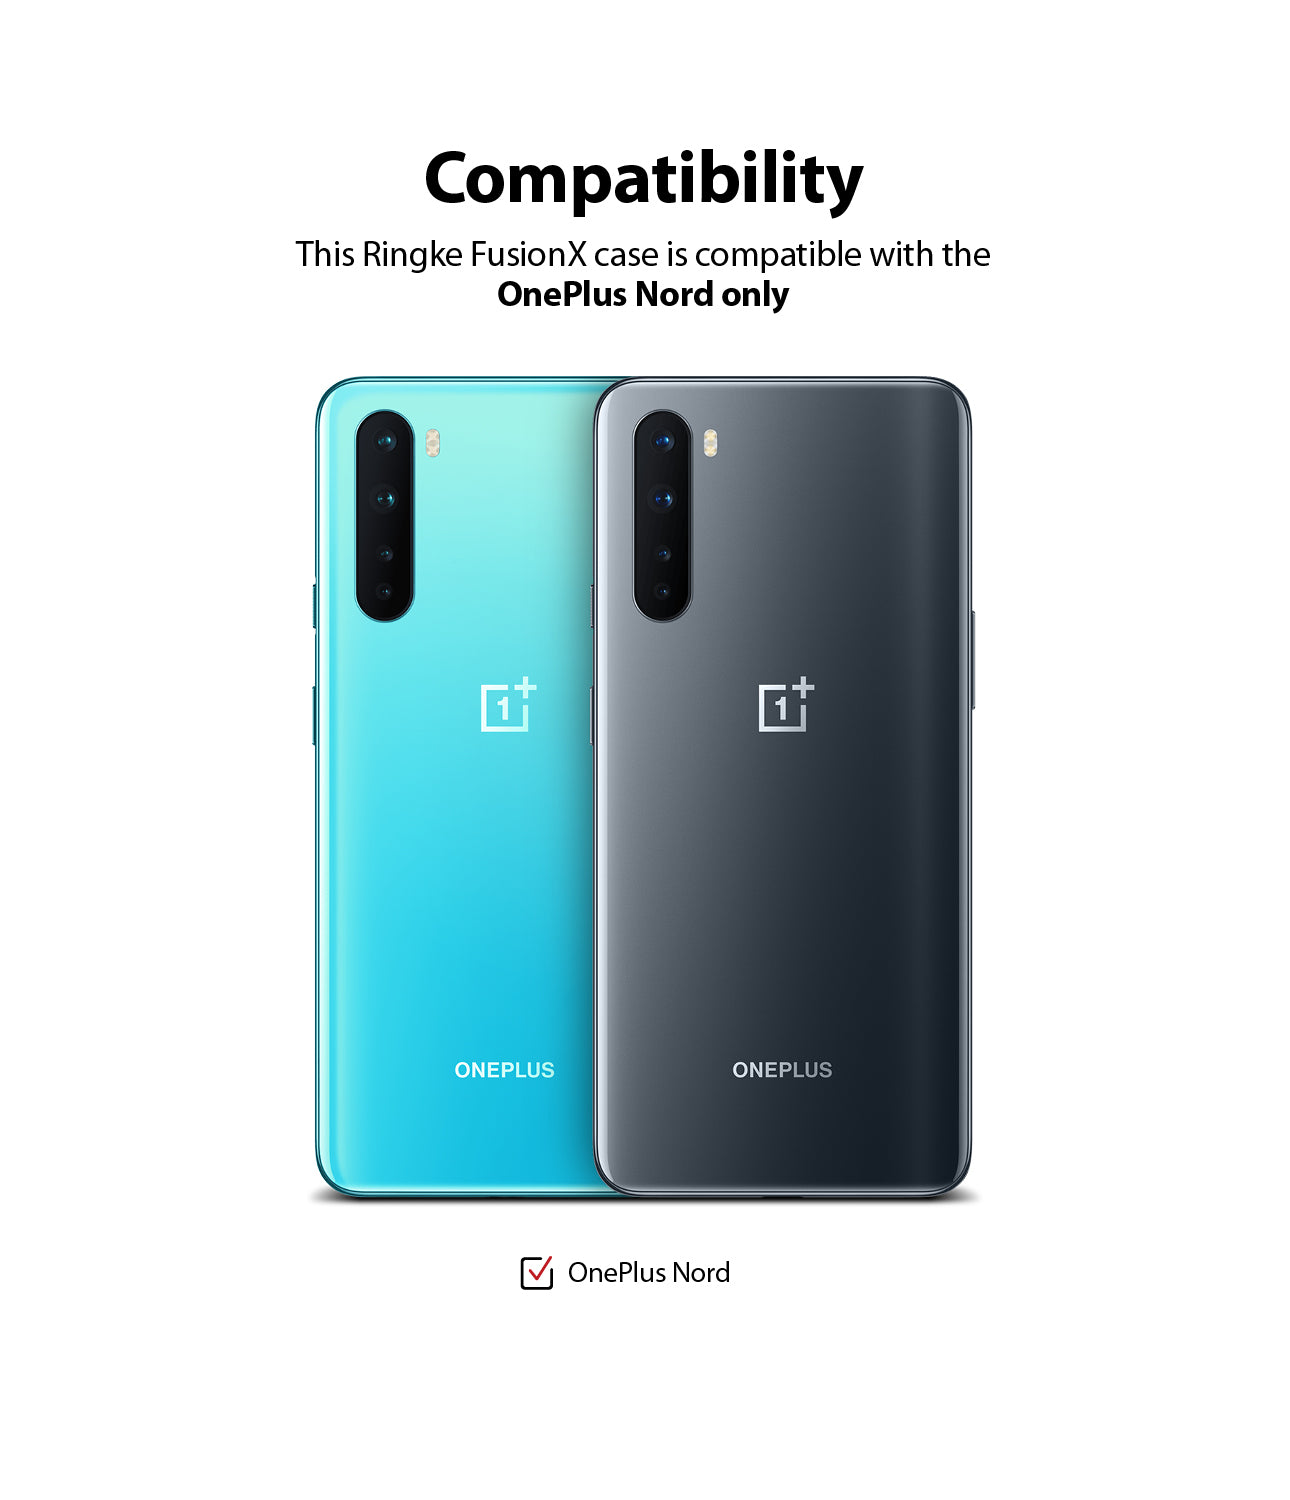 compatible with only oneplus nord